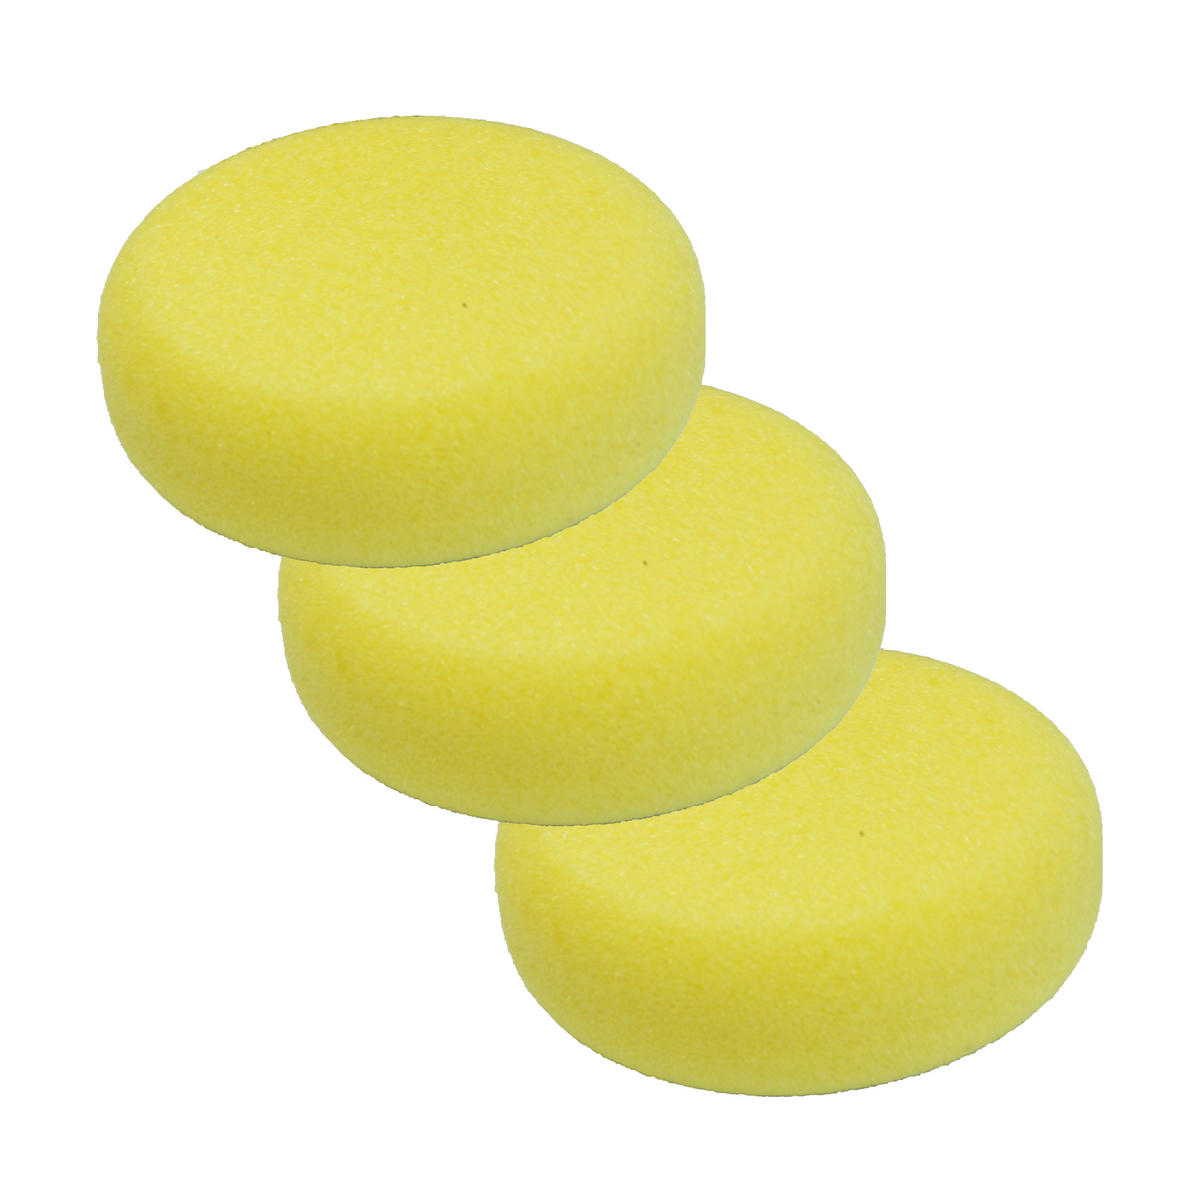 Car Cleaning 150mm Hard Yellow With Screw Polishing Cutting Detailing Mop Head x 3